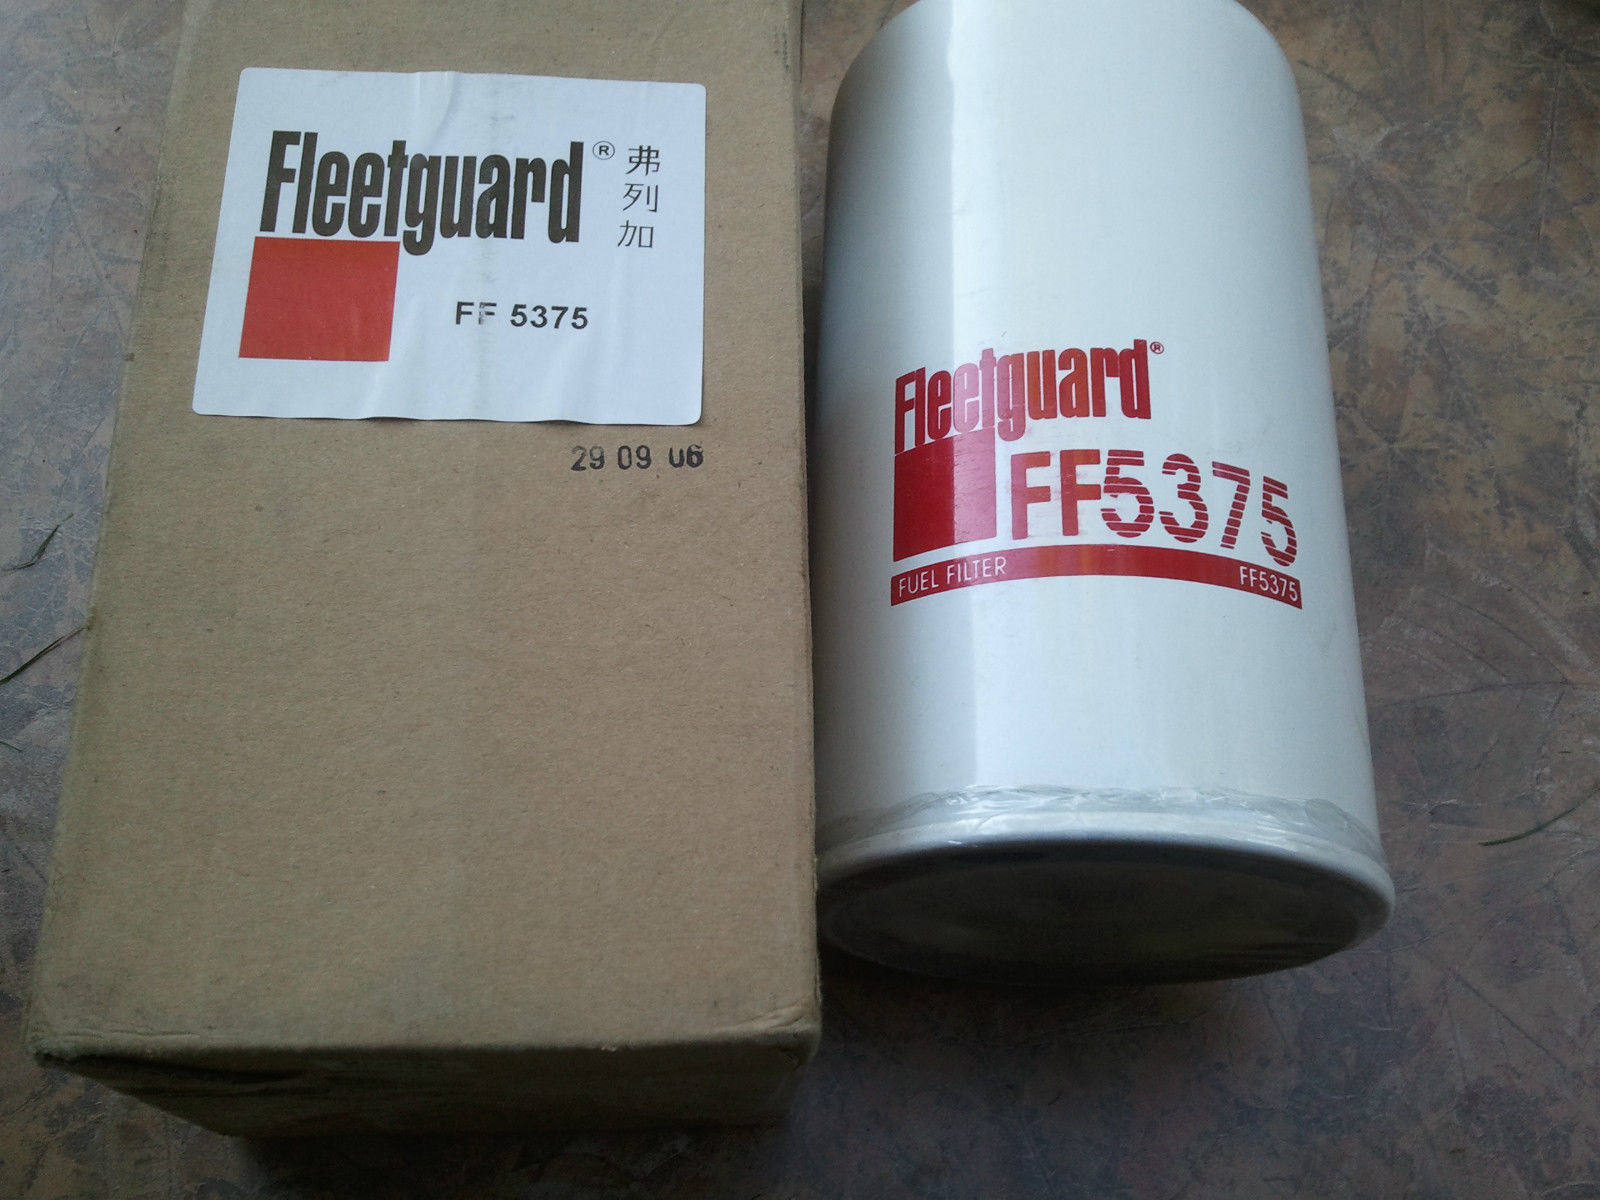 Fleetguard Fuel Filter Ff5375 Ref Mft7290 Me 150631 150631c Filters For Diesel